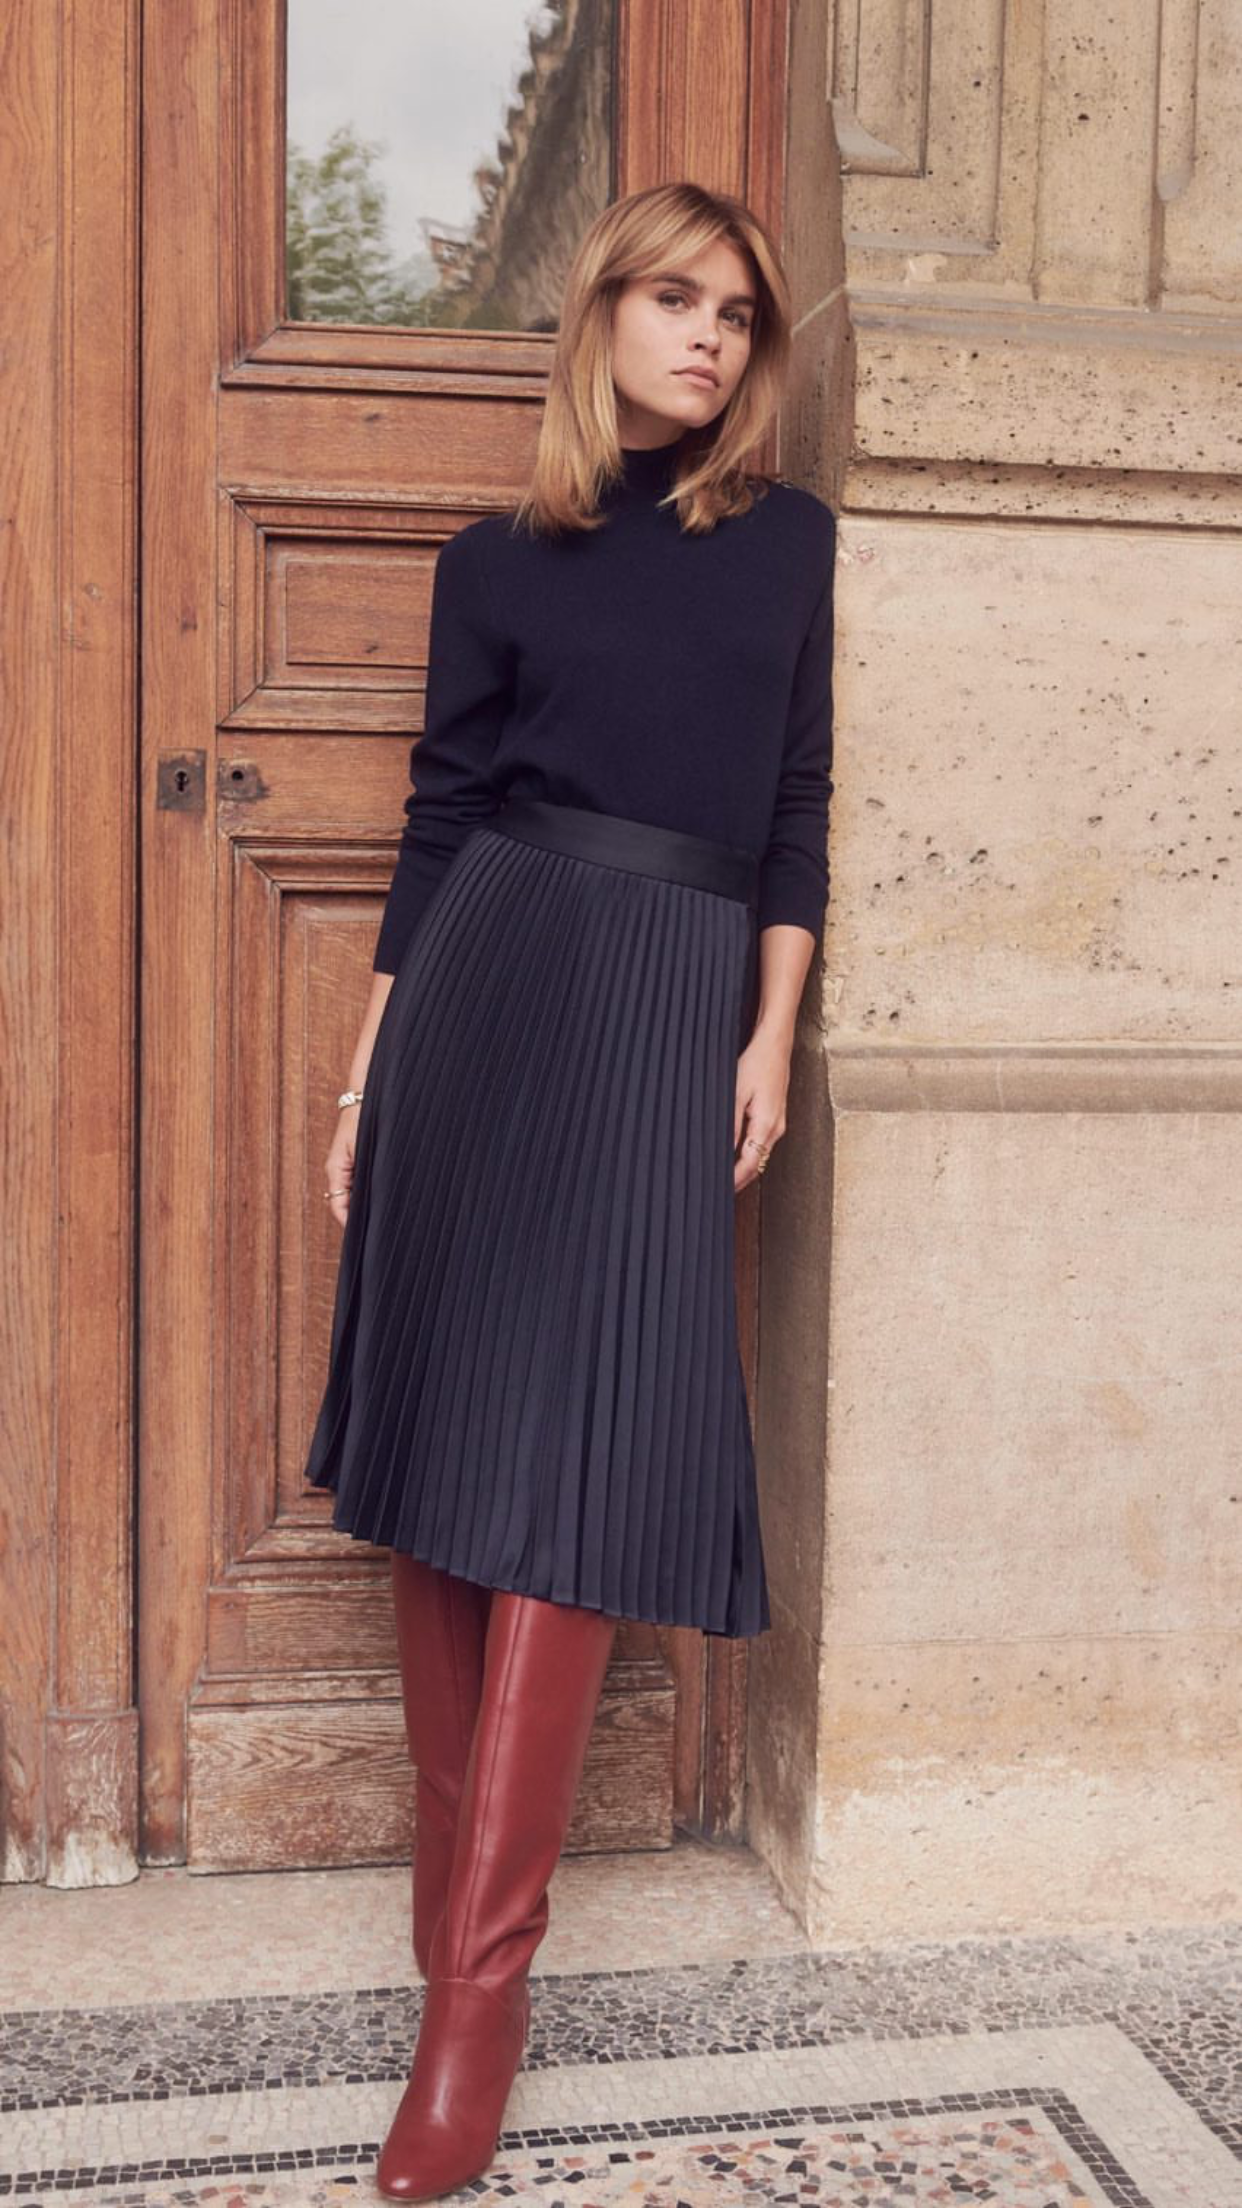 40d489e42744 Black sweater, navy pleated midi skirt, red boots. Street style, street  fashion